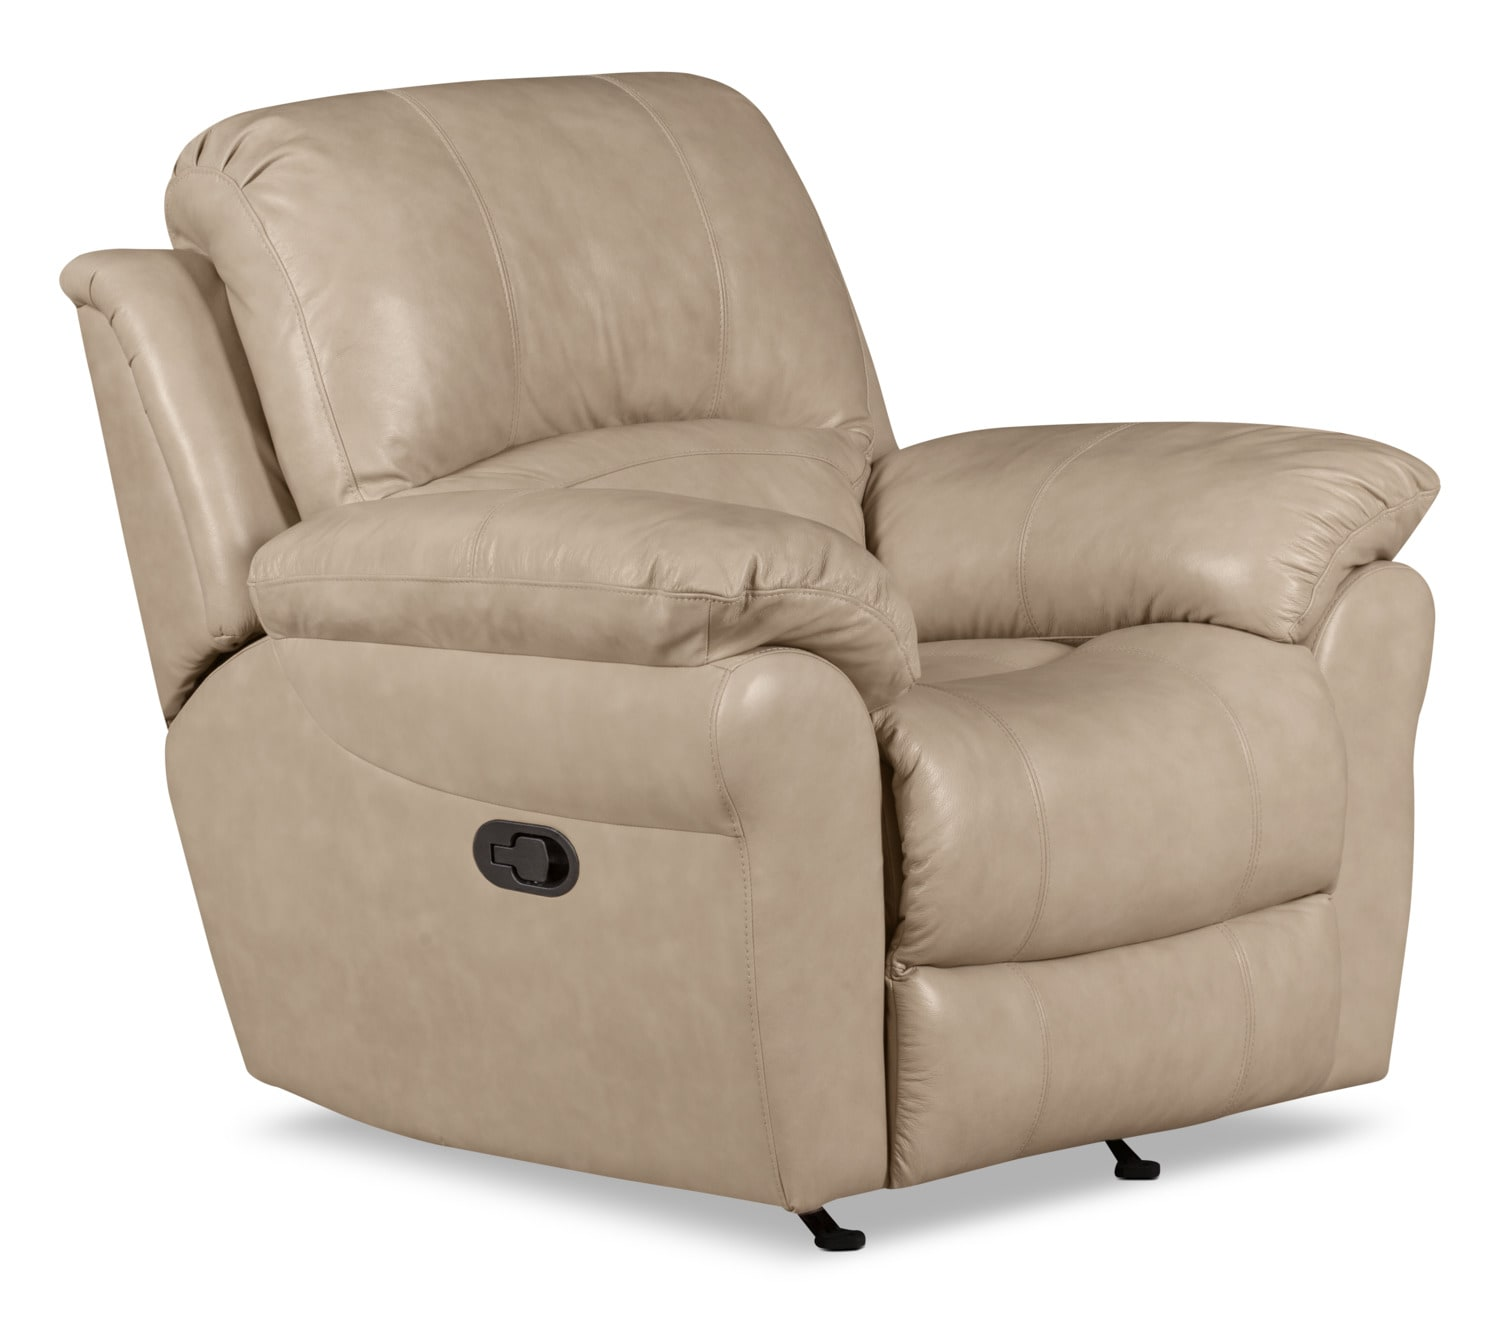 Kobe Genuine Leather Reclining Chair – Stone